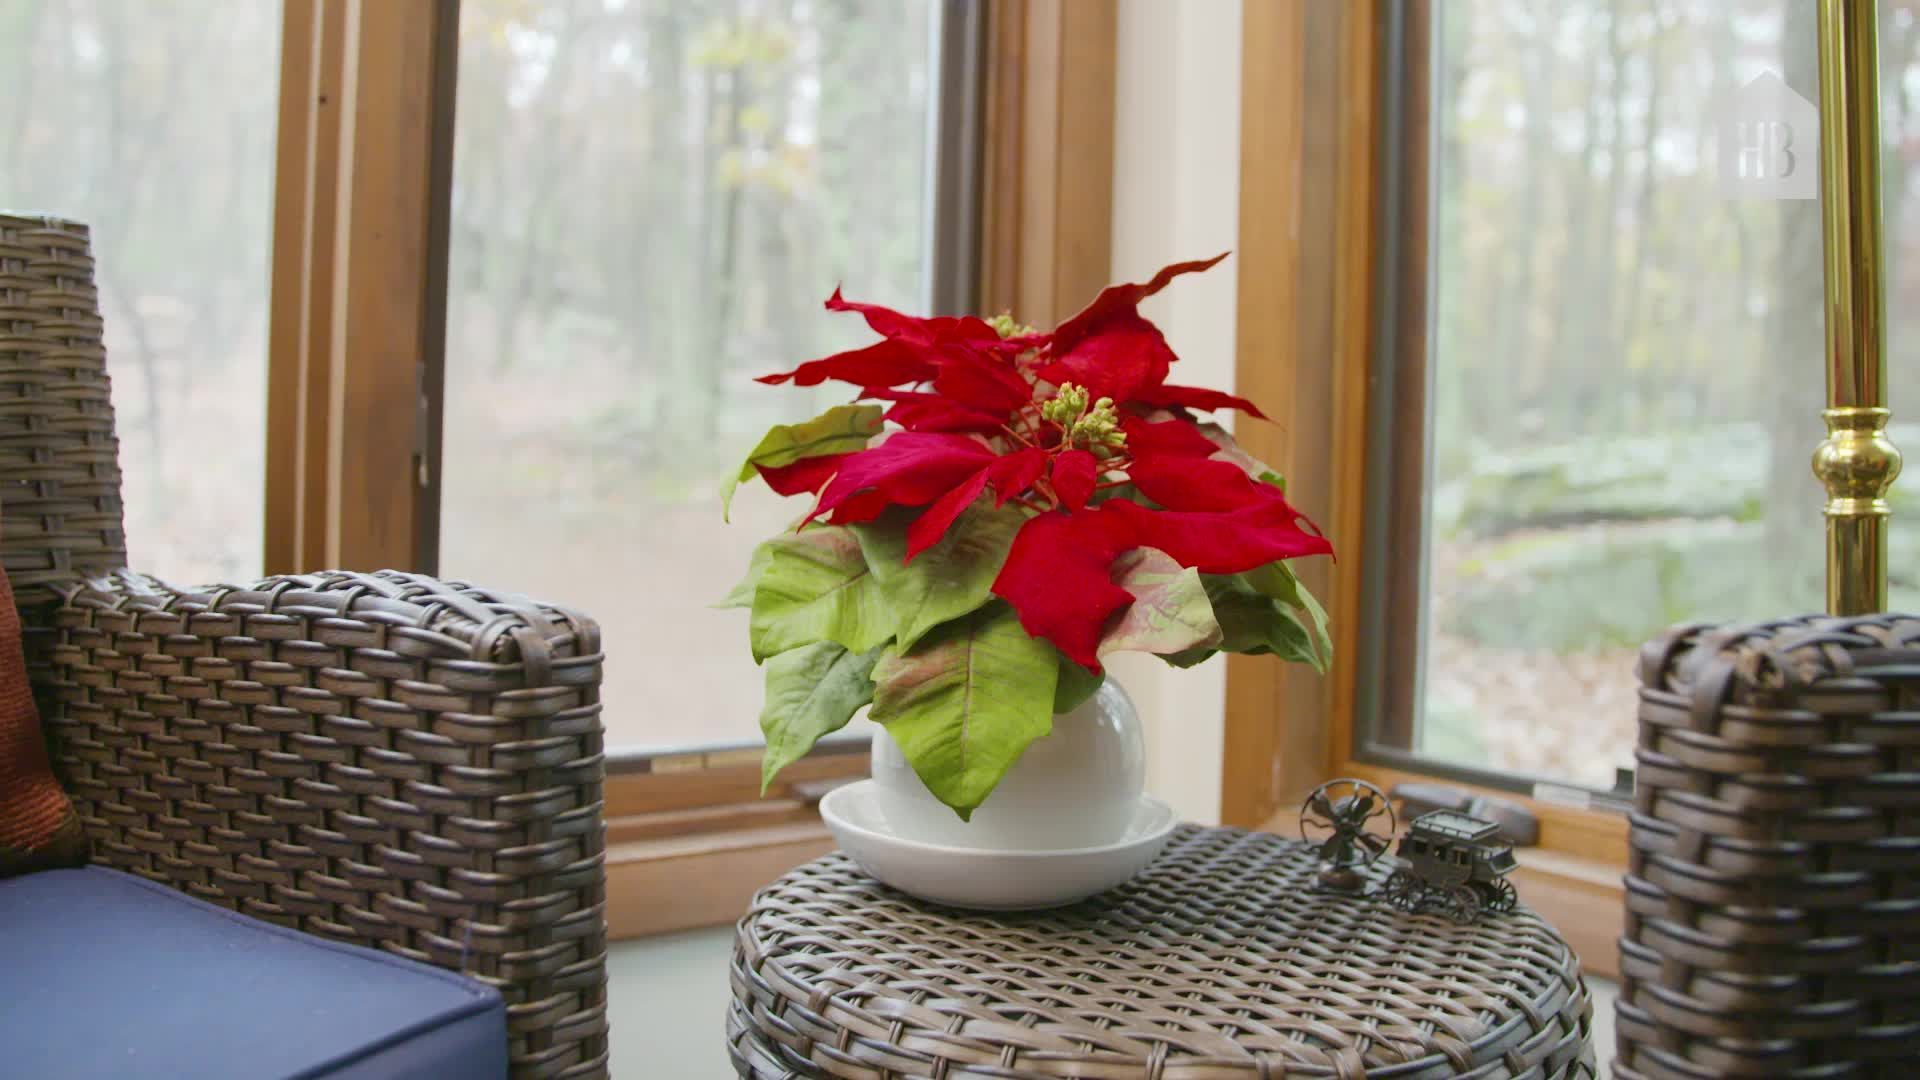 How To Take Care Of Poinsettias From Gardeners